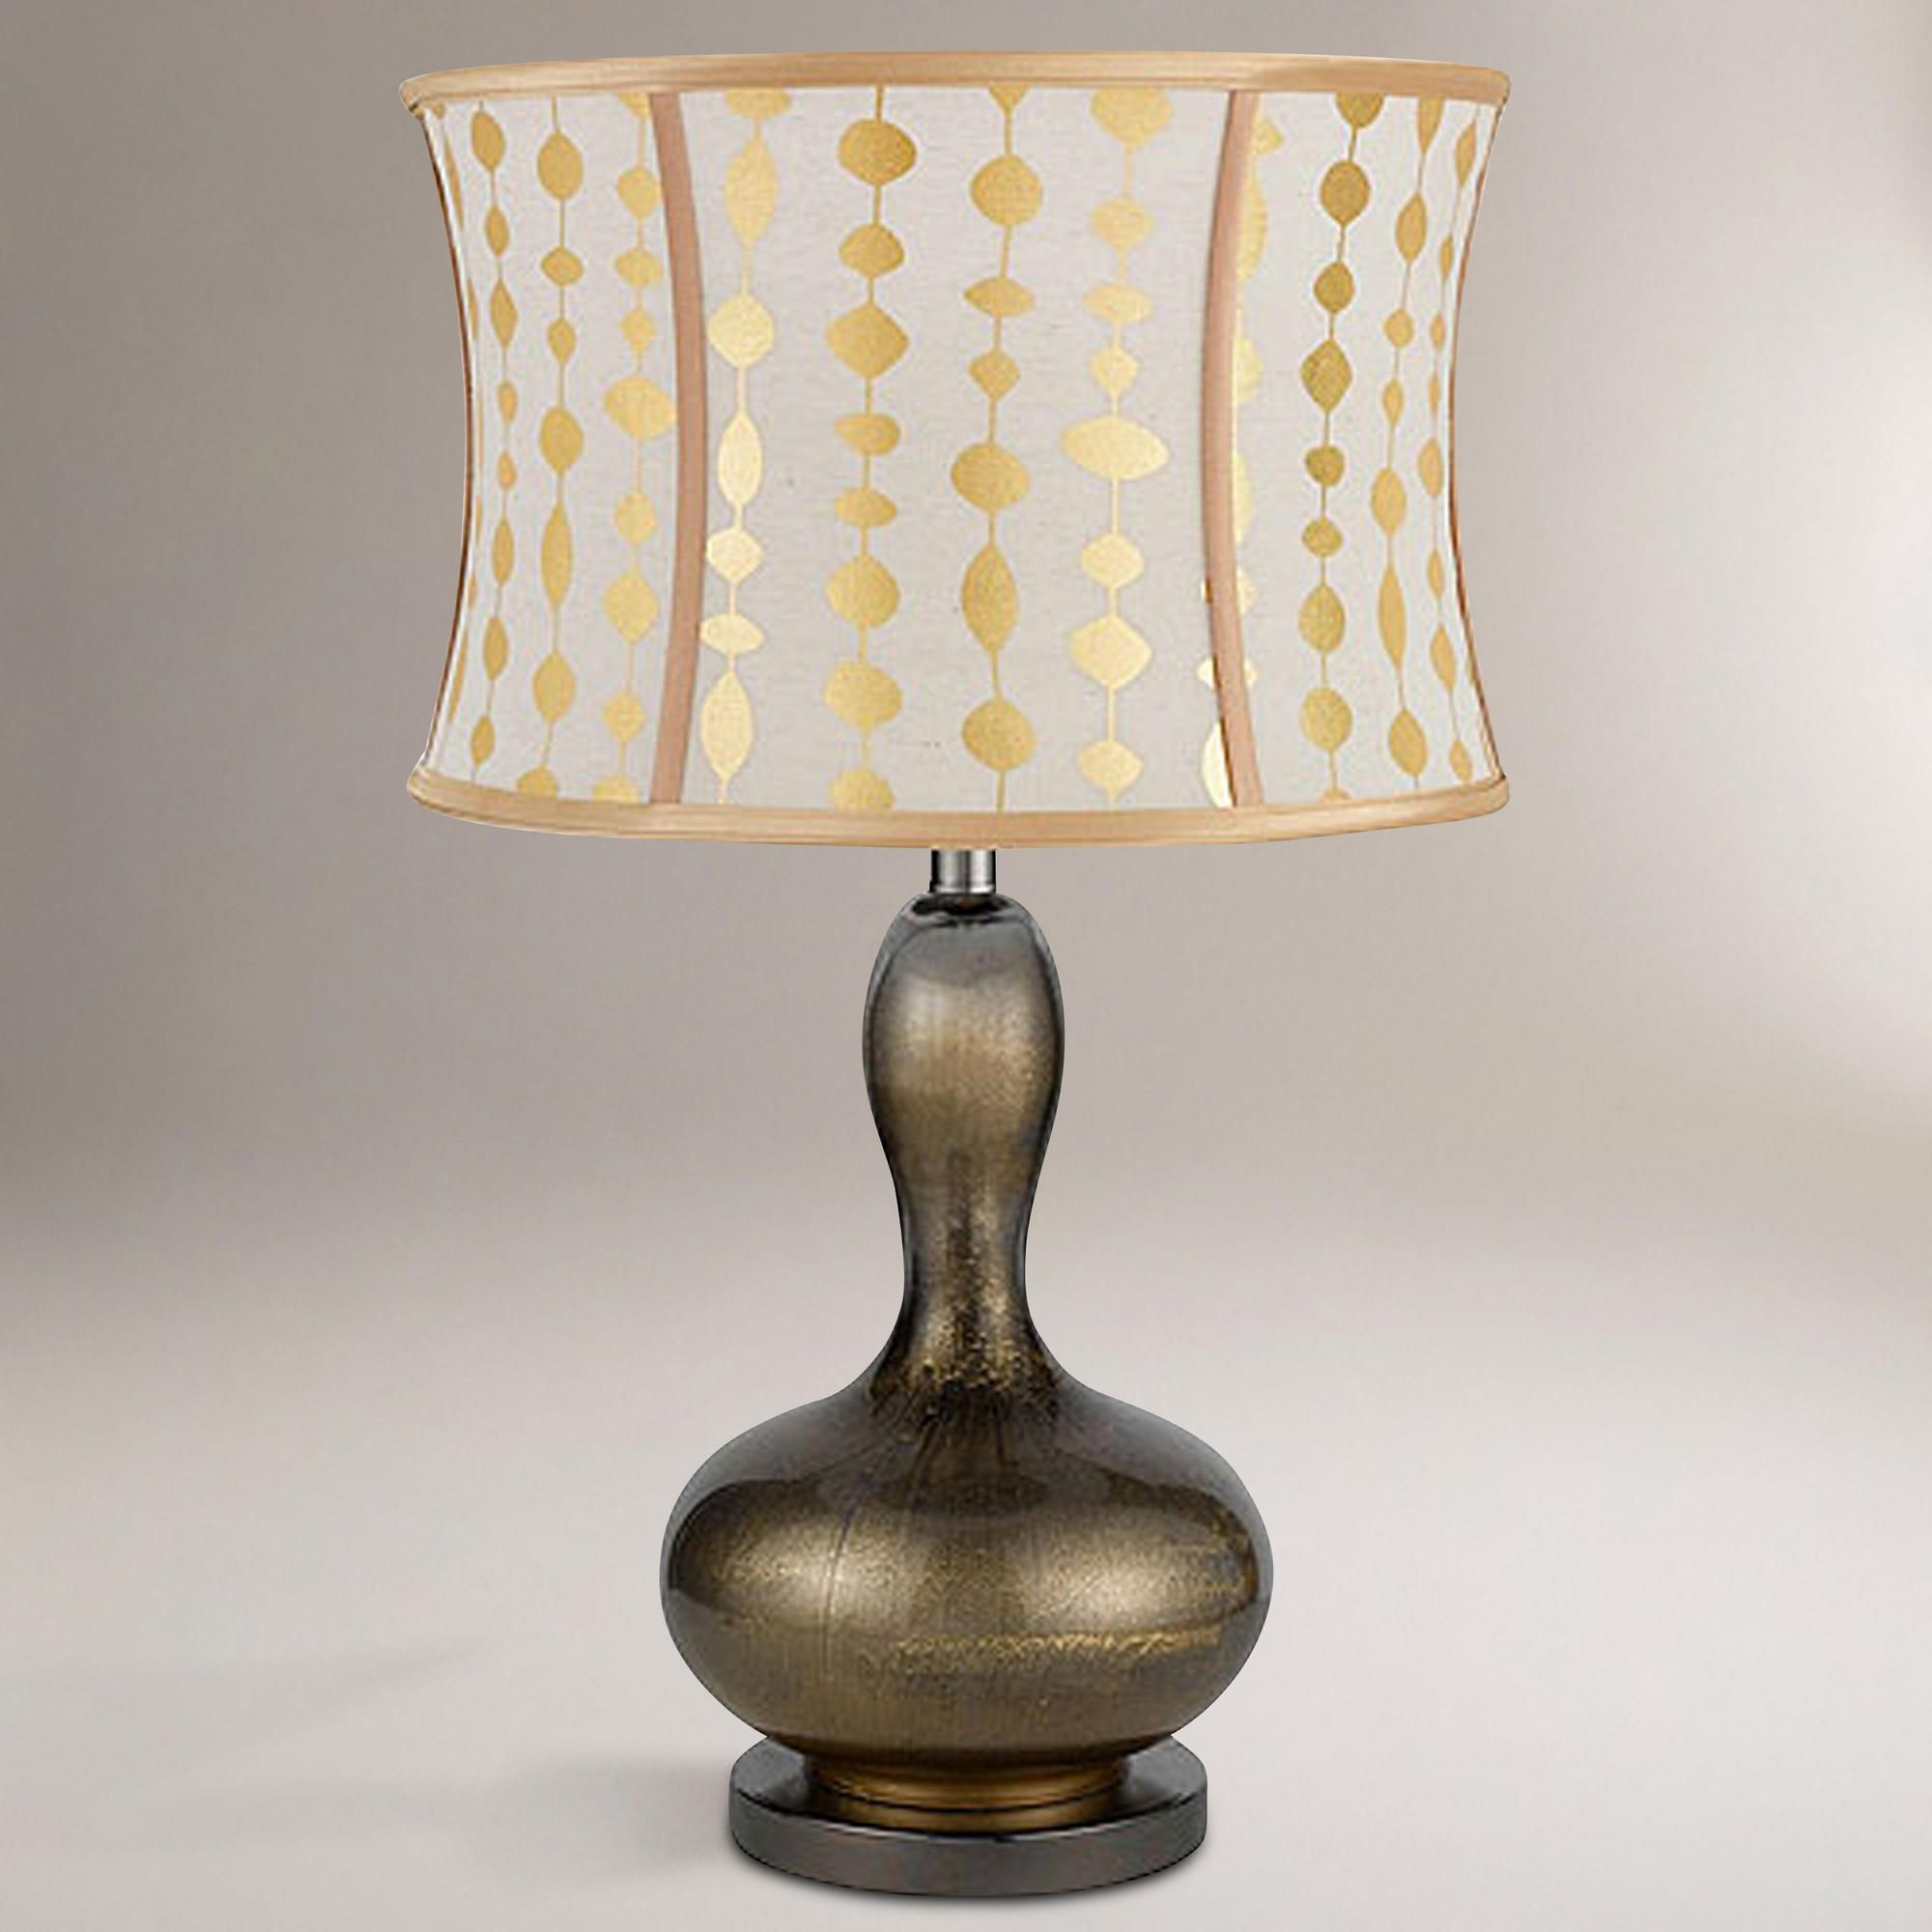 Amelia table lamp world market vispera place pinterest amelia table lamp world market geotapseo Image collections